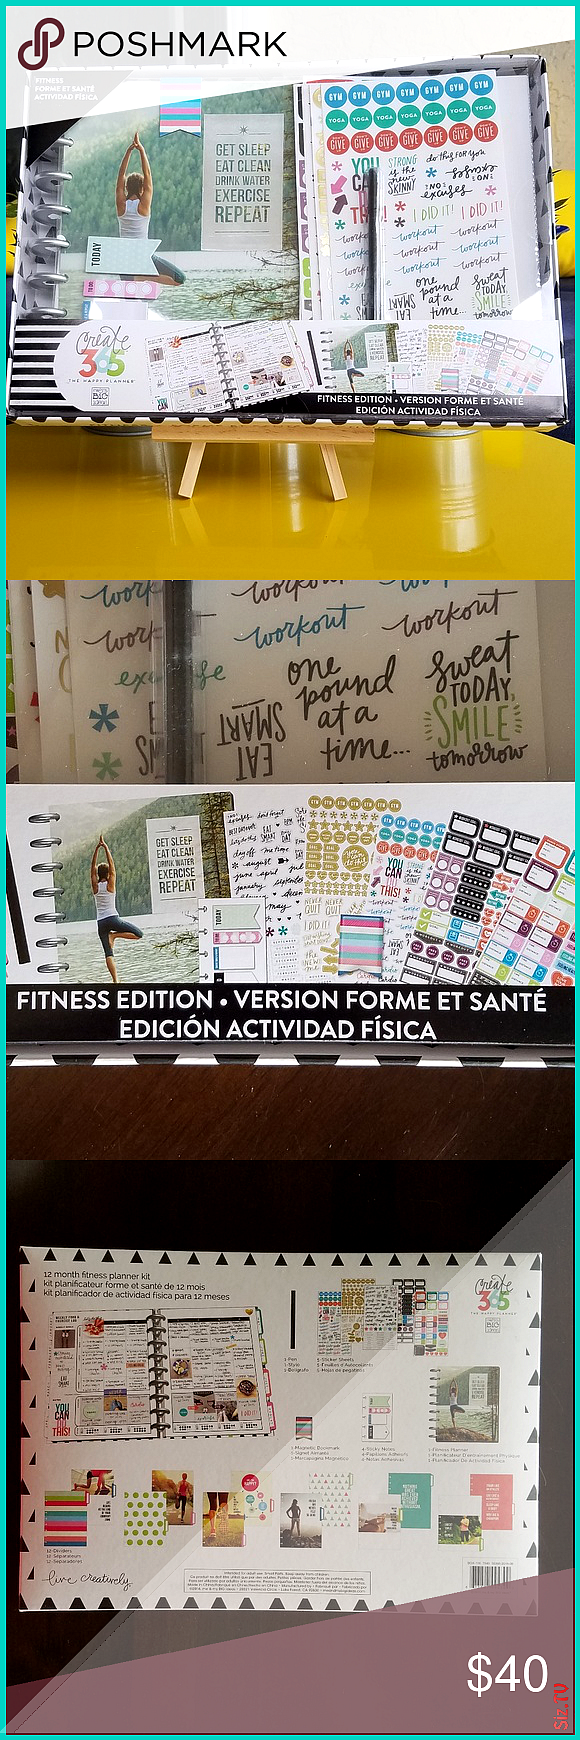 12 Month Create 365 Fitness Journal Edition Brand New Includes 1pen 5 sticker sheets 1 Bookmark 4 st...